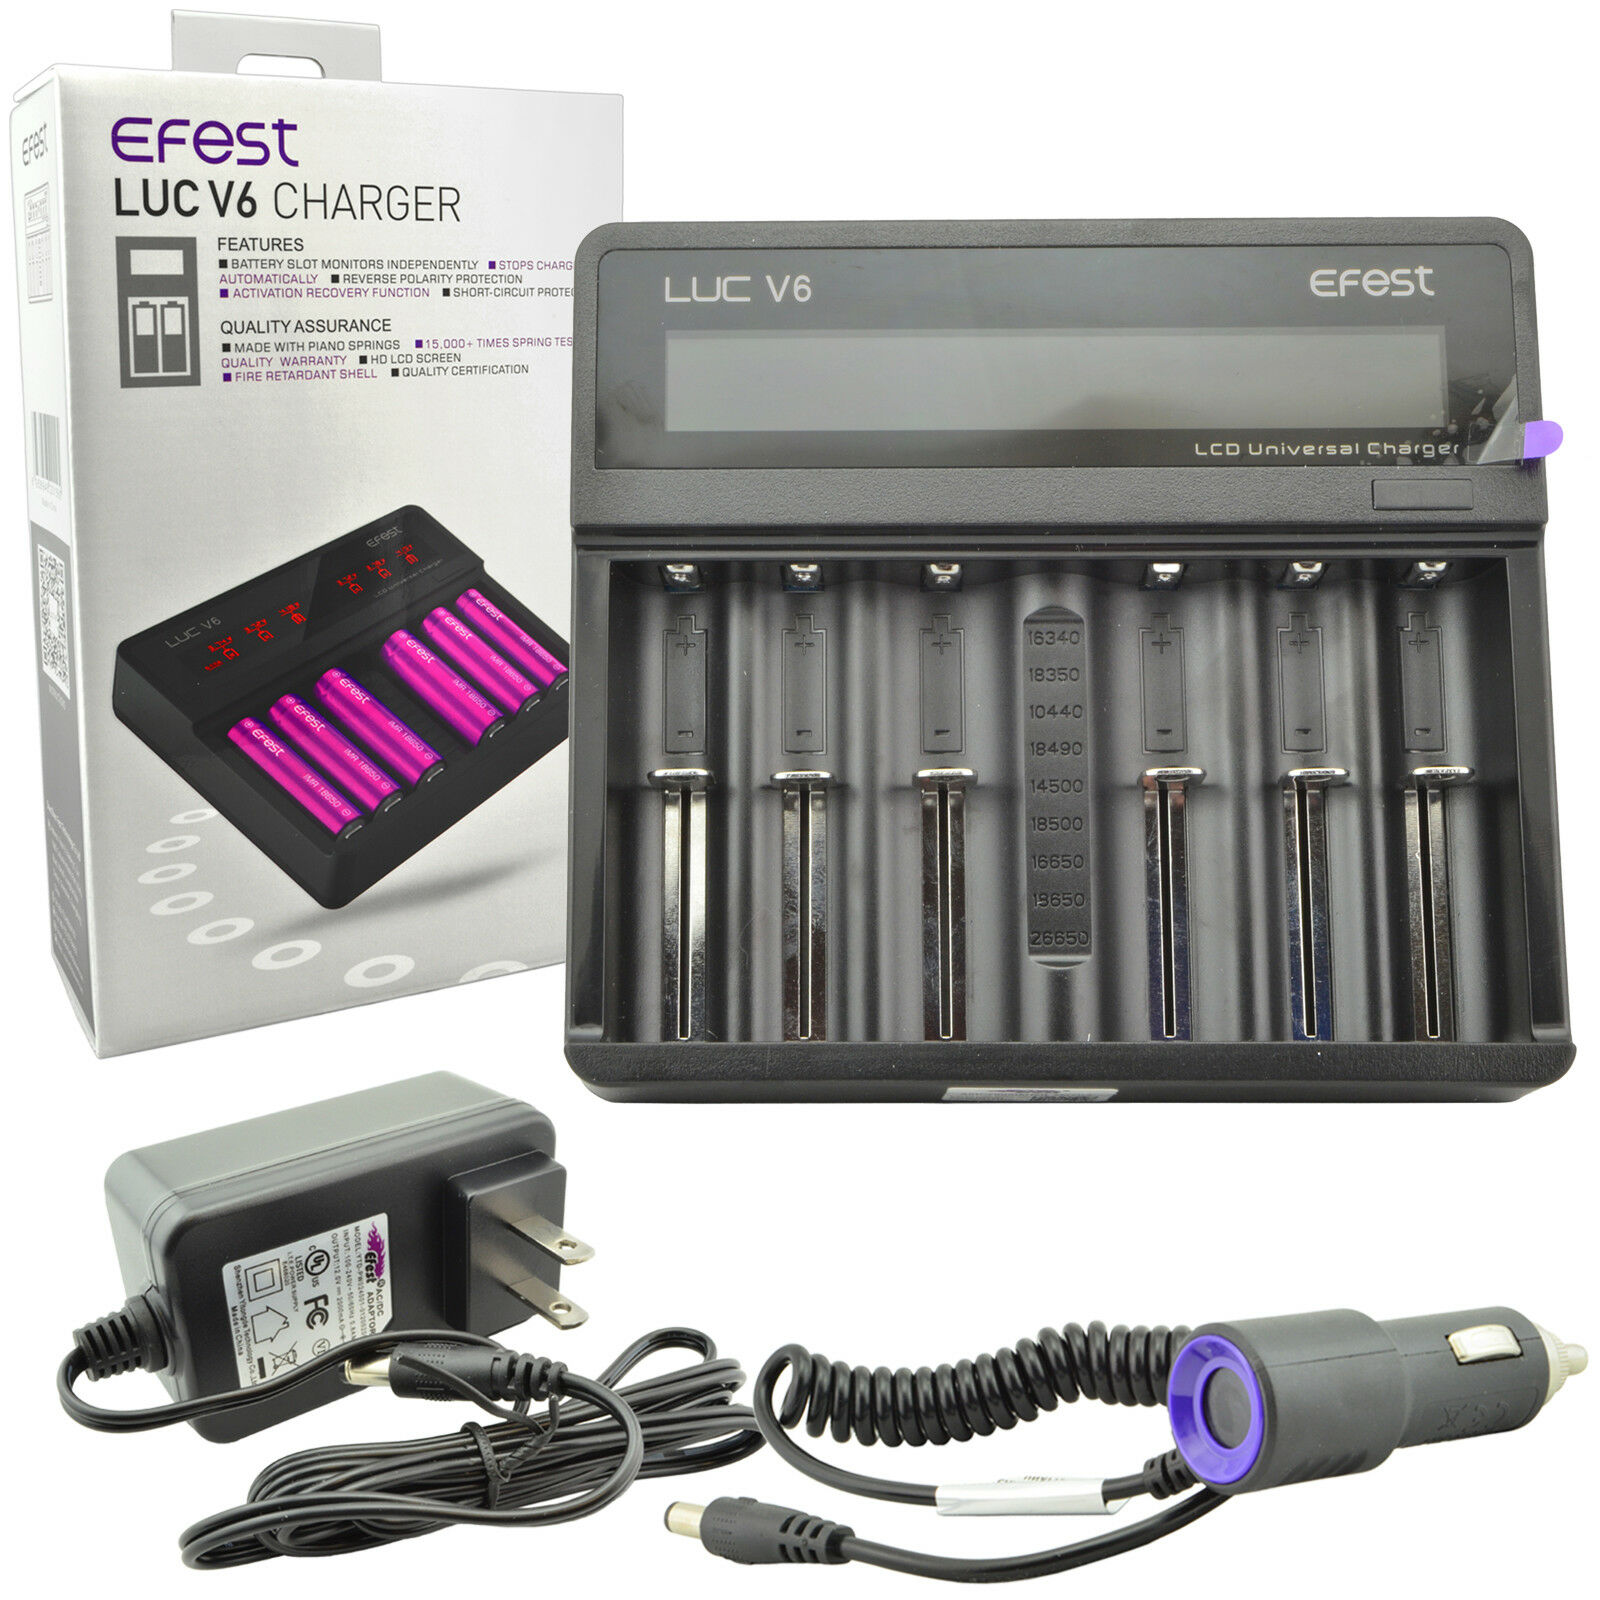 Efest Luc V6 Lcd 37v 6 Bay 18650 26650 16340 Li Ion Battery Charger Baterai 14500 Batre Recharge Aa A2 1 Of 9free Shipping See More